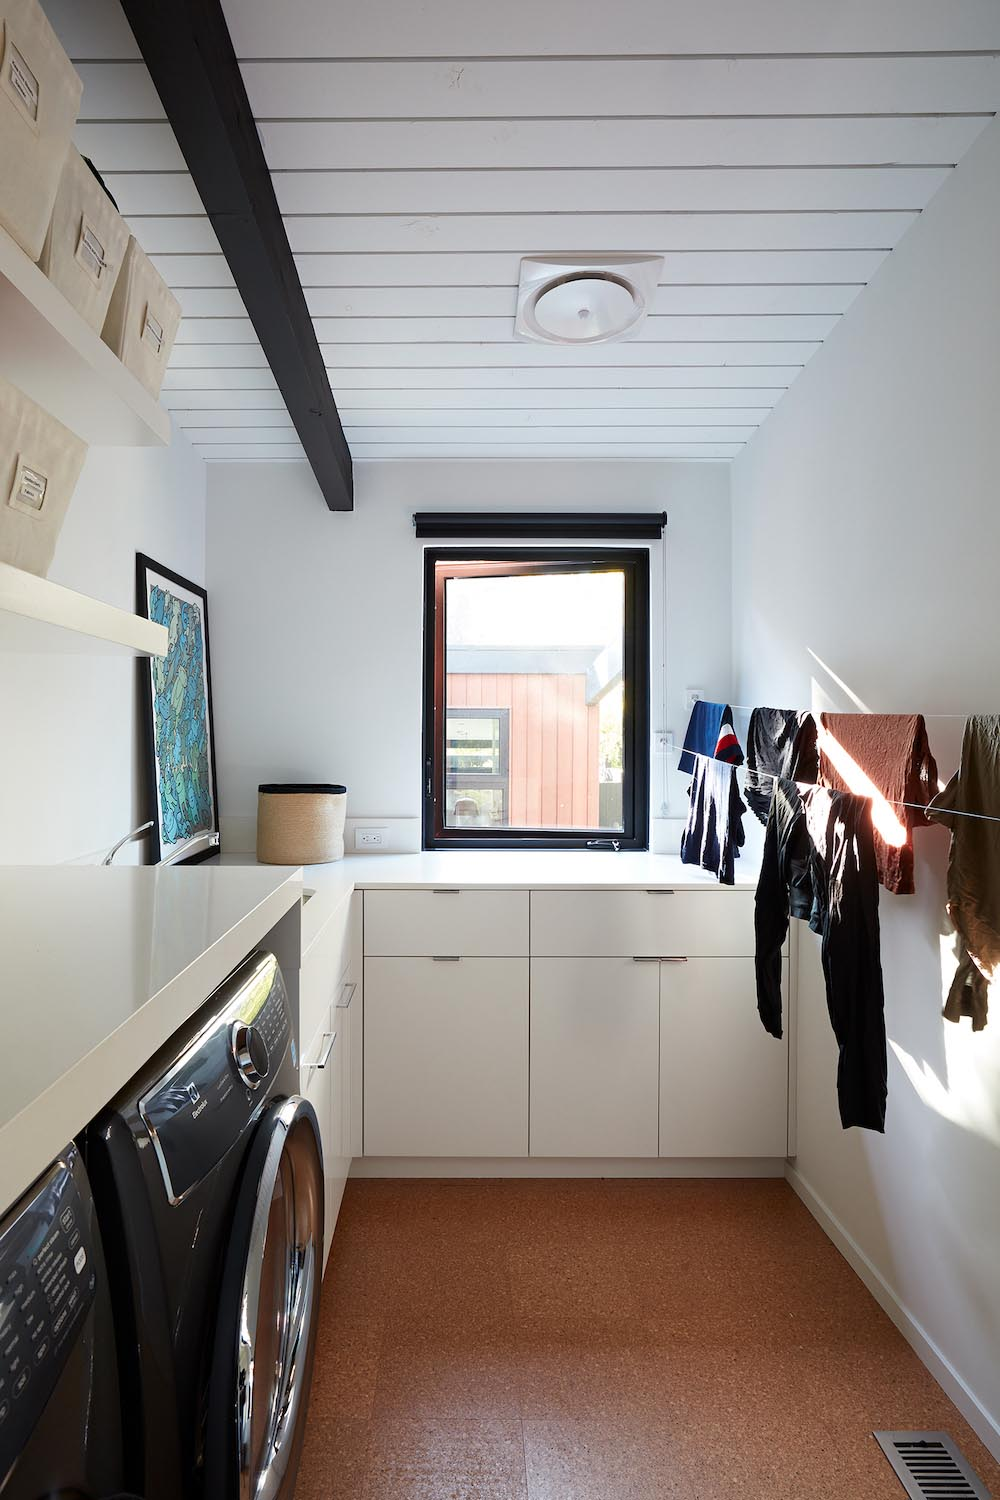 This modern laundry room includes cabinetry that wraps around the corner of the room, a countertop that continues above the washer and dryer, floating shelves, and drying lines.